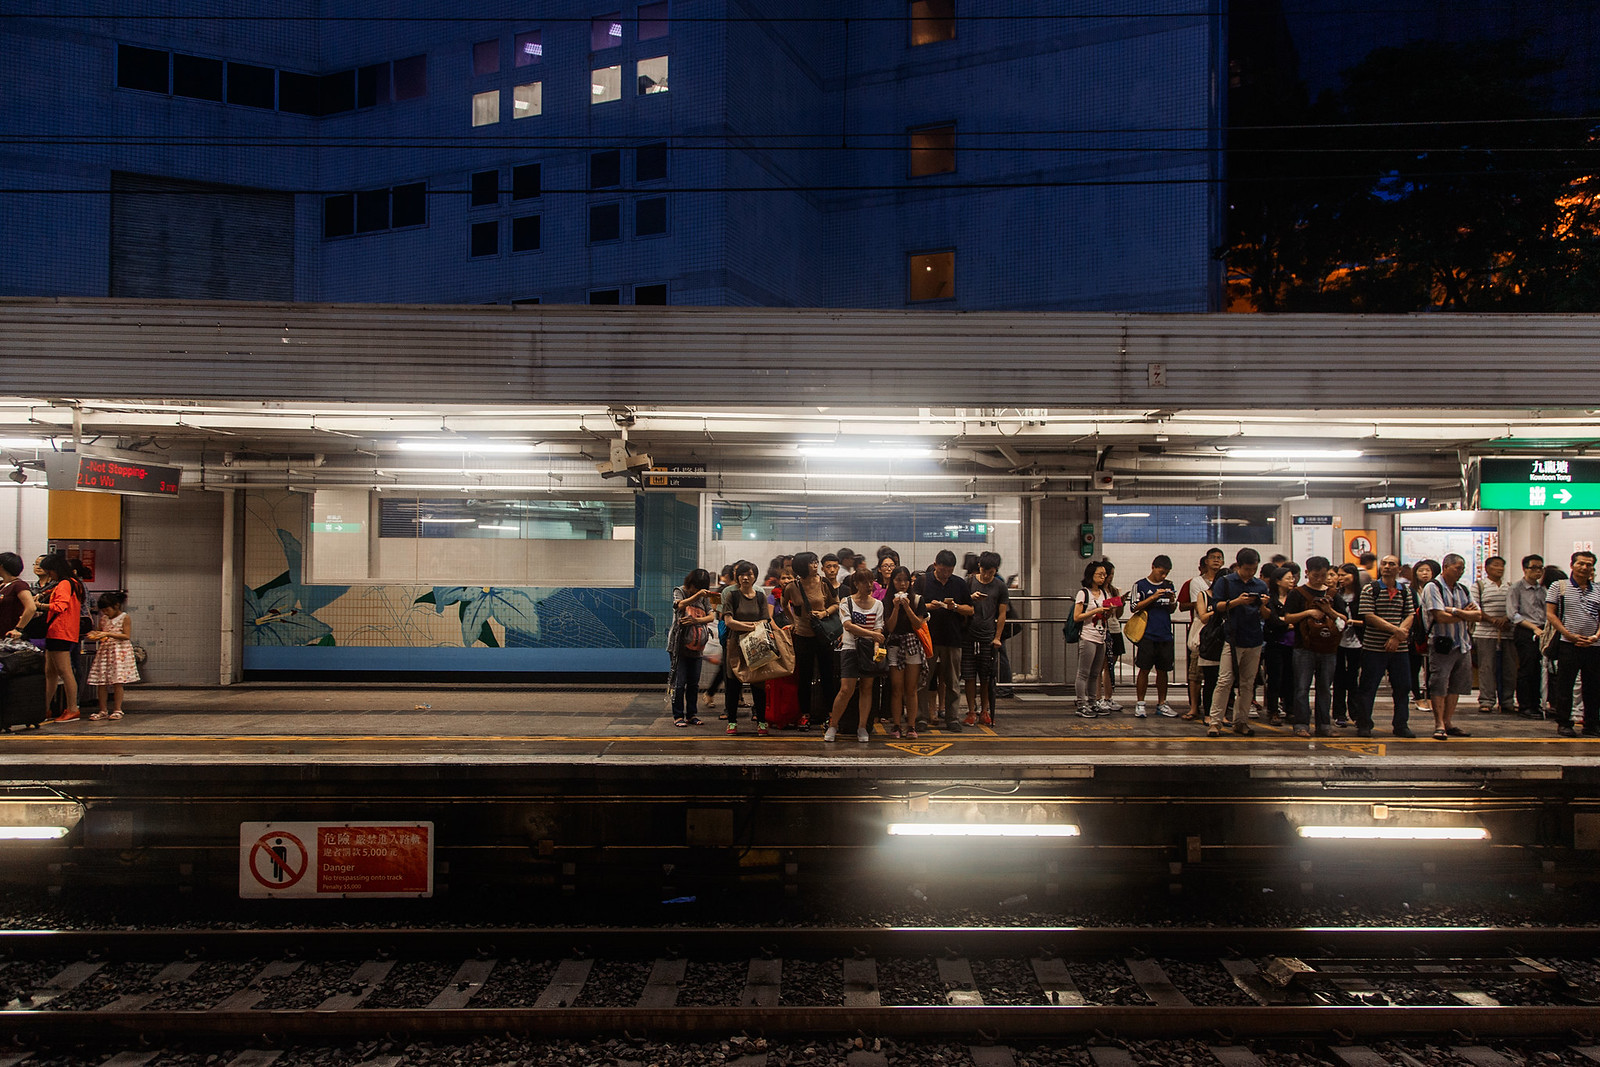 HK commuters